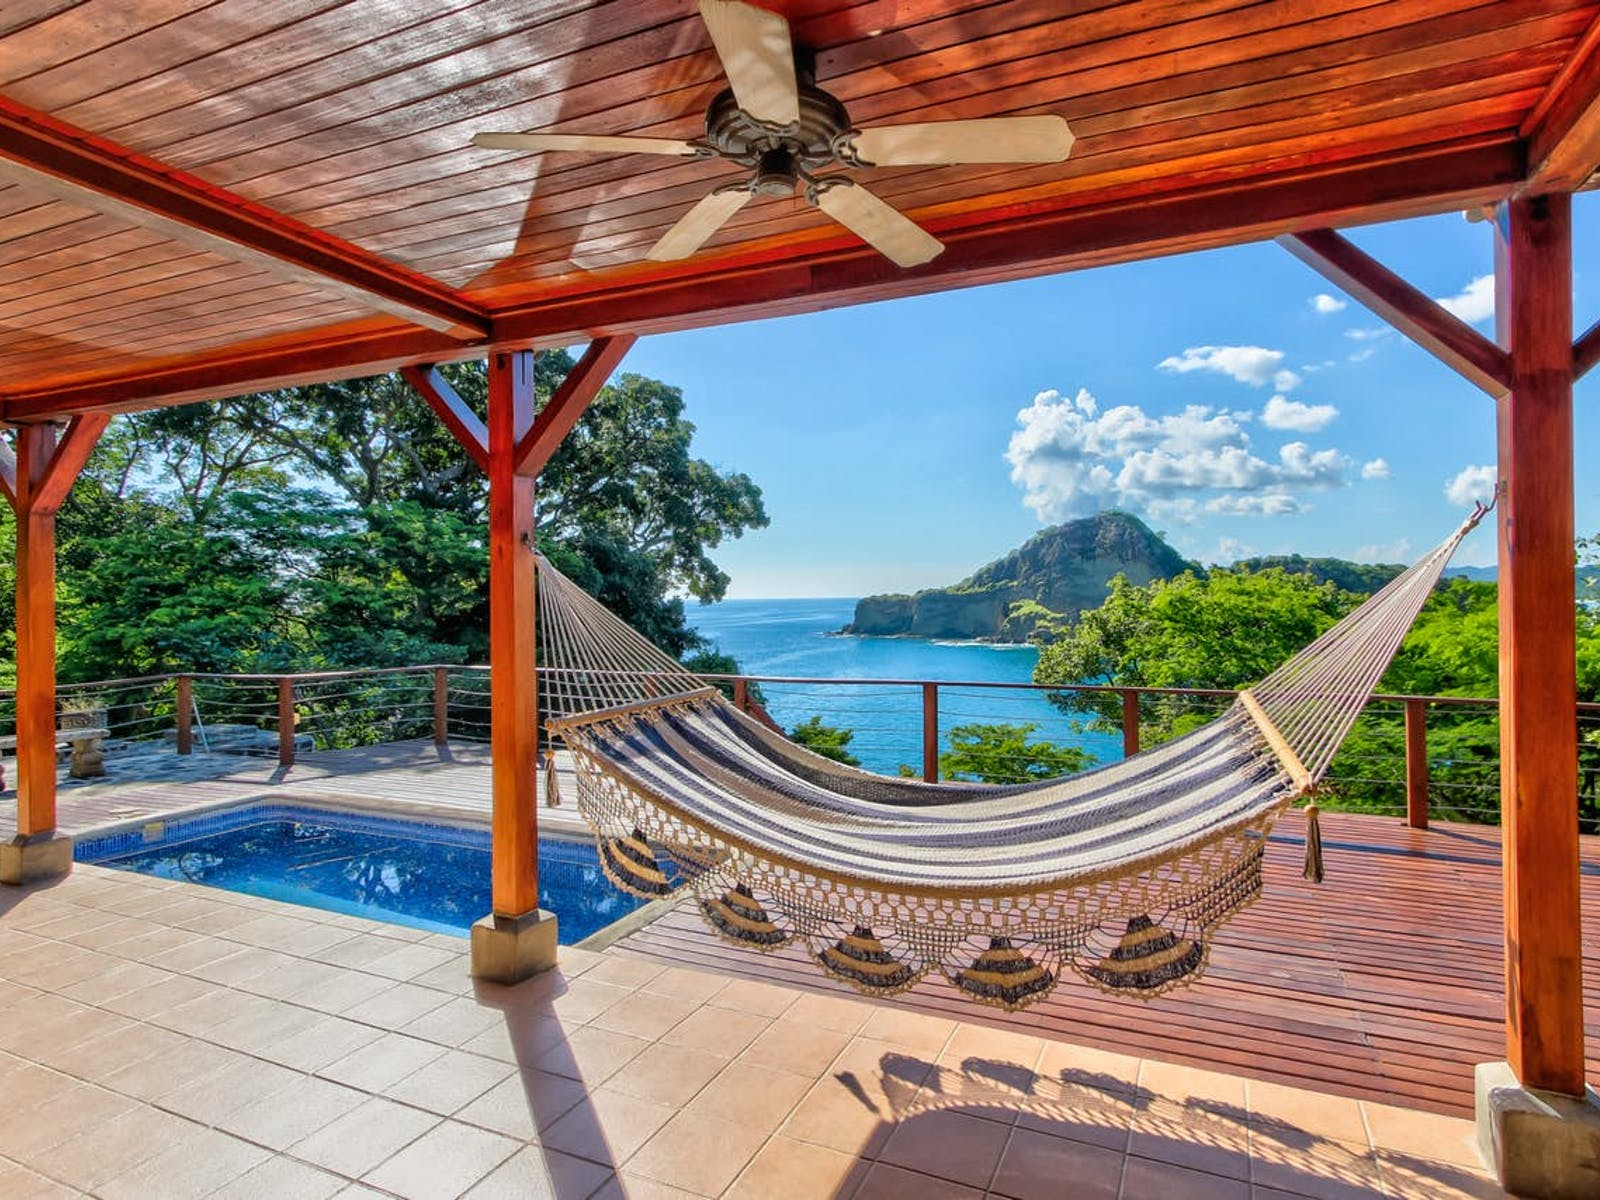 Nicaragua oceanfront vacation rental with a pool and a hammock for lounging